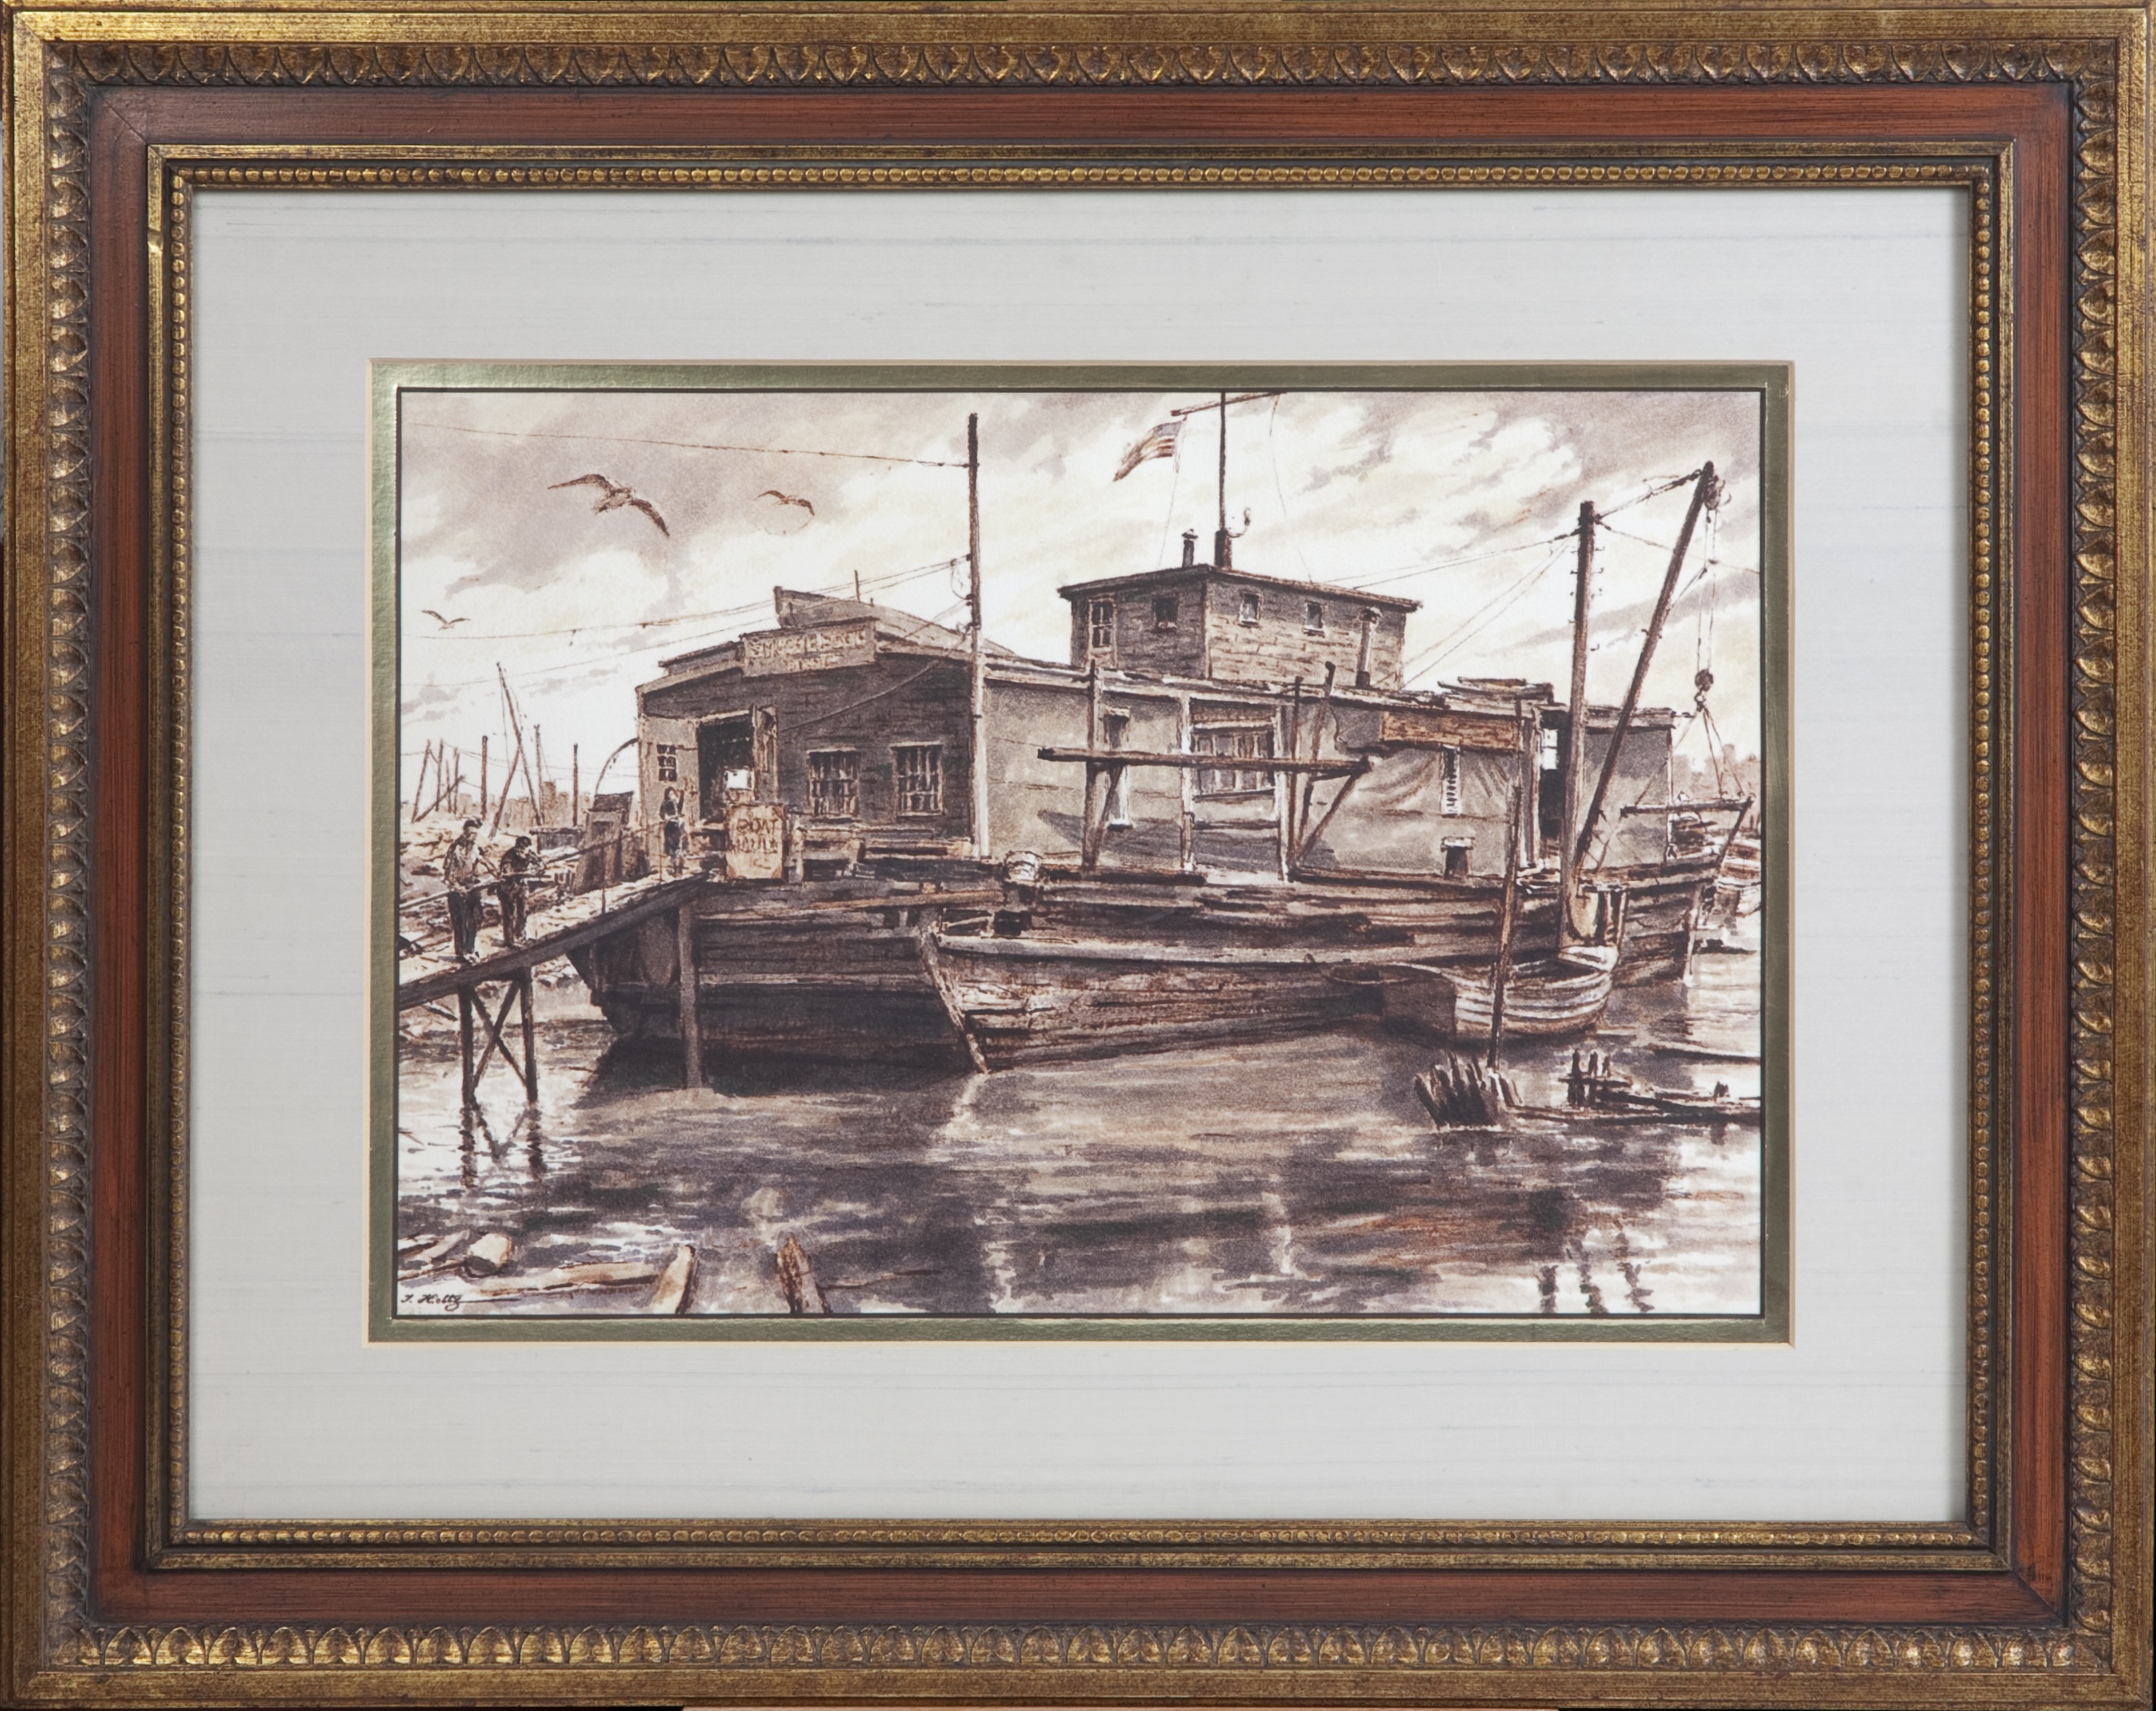 184 Willies Boat 1970 - Felt Pen and Wash - 22 x 14.75 - Frame: 34.5 x 27.25 x 1.25